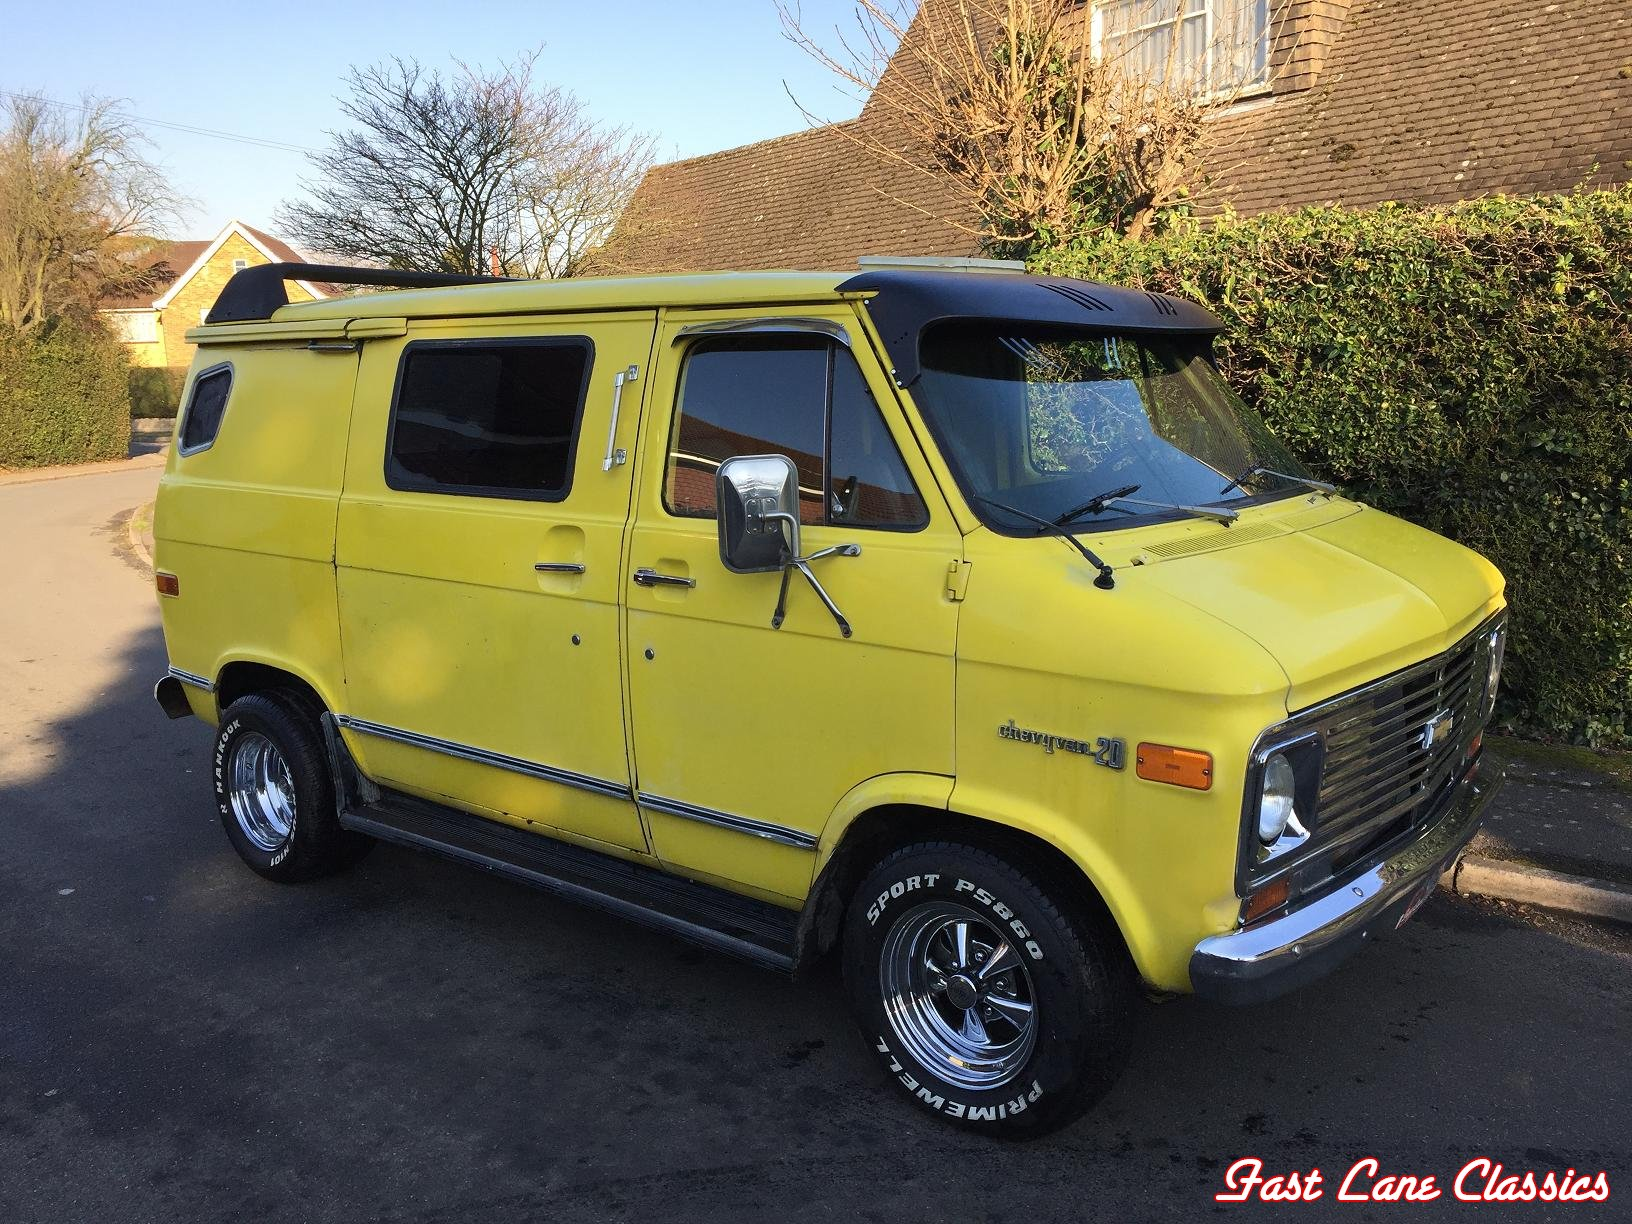 1976 chevy g20 shorty van sold fast lane classics. Black Bedroom Furniture Sets. Home Design Ideas